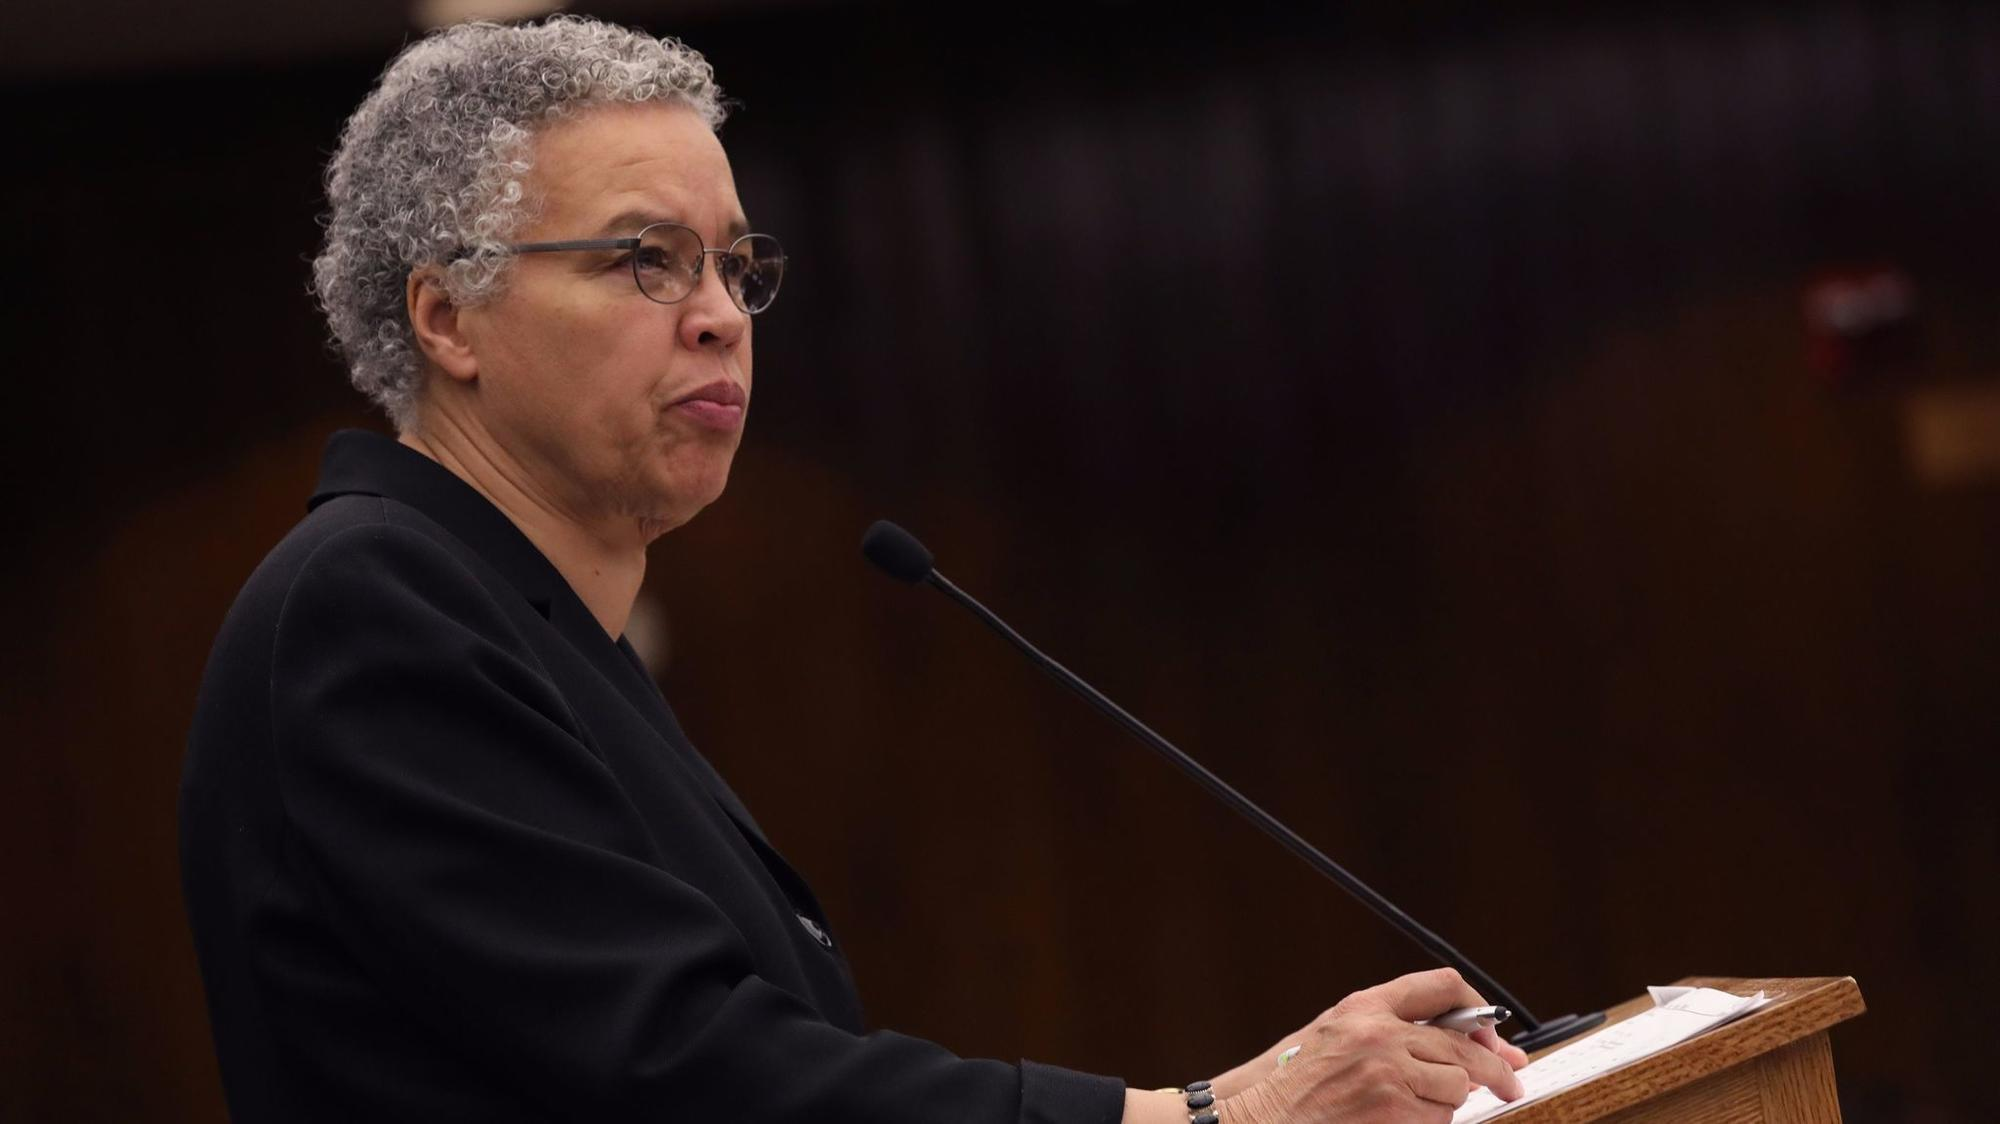 chicagotribune.com - Preckwinkle agrees to fewer Cook County job cuts; hundreds of layoffs still in works